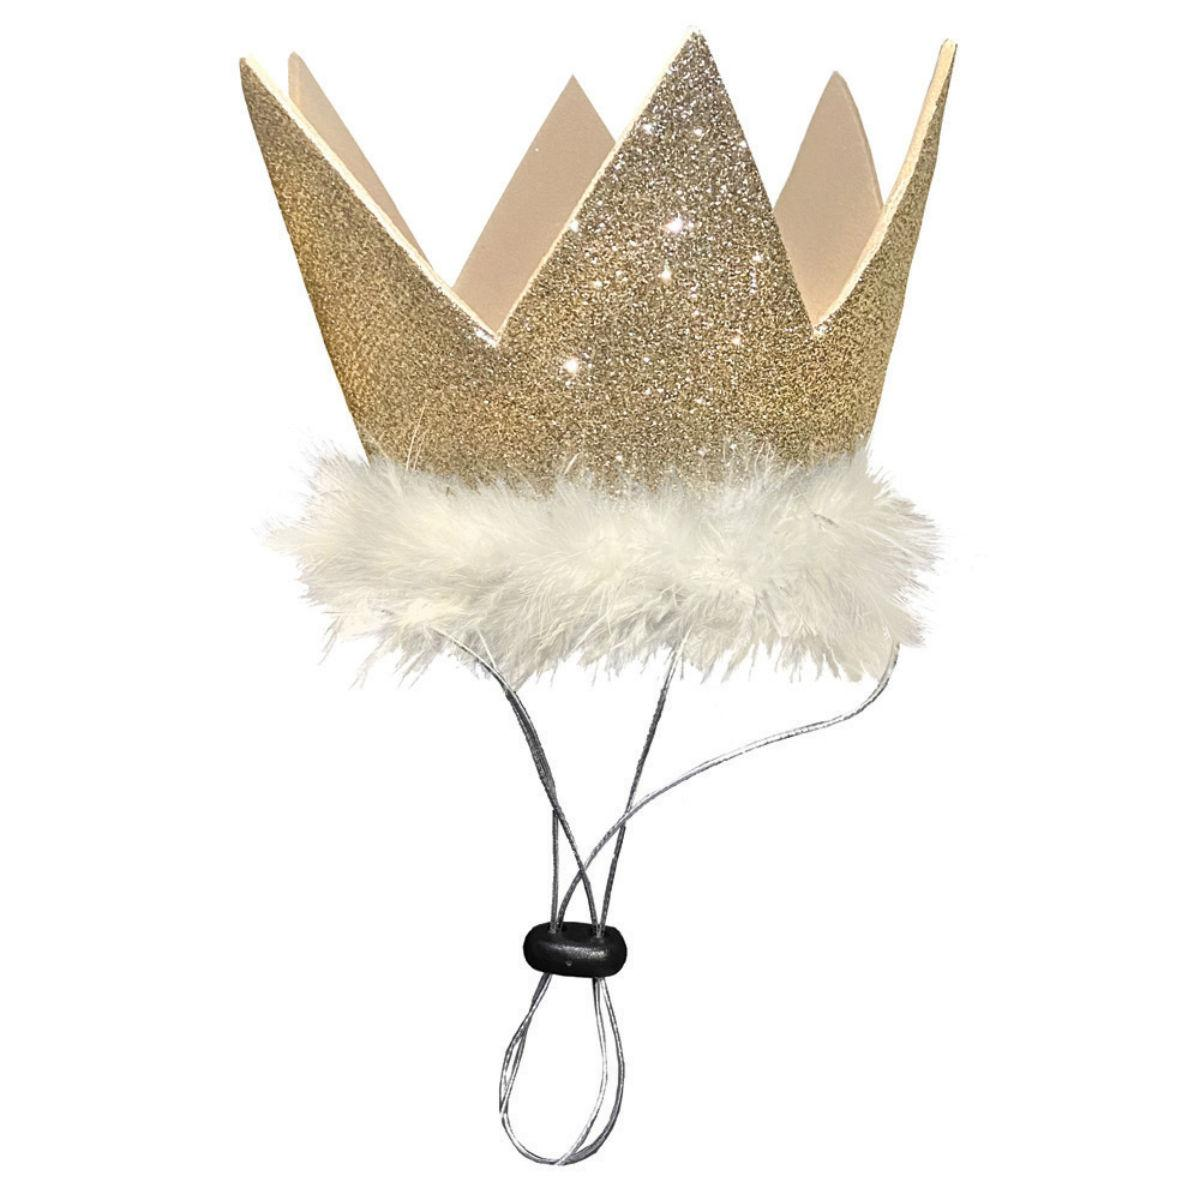 Huxley & Kent Party Crown Dog and Cat Hat - Gold